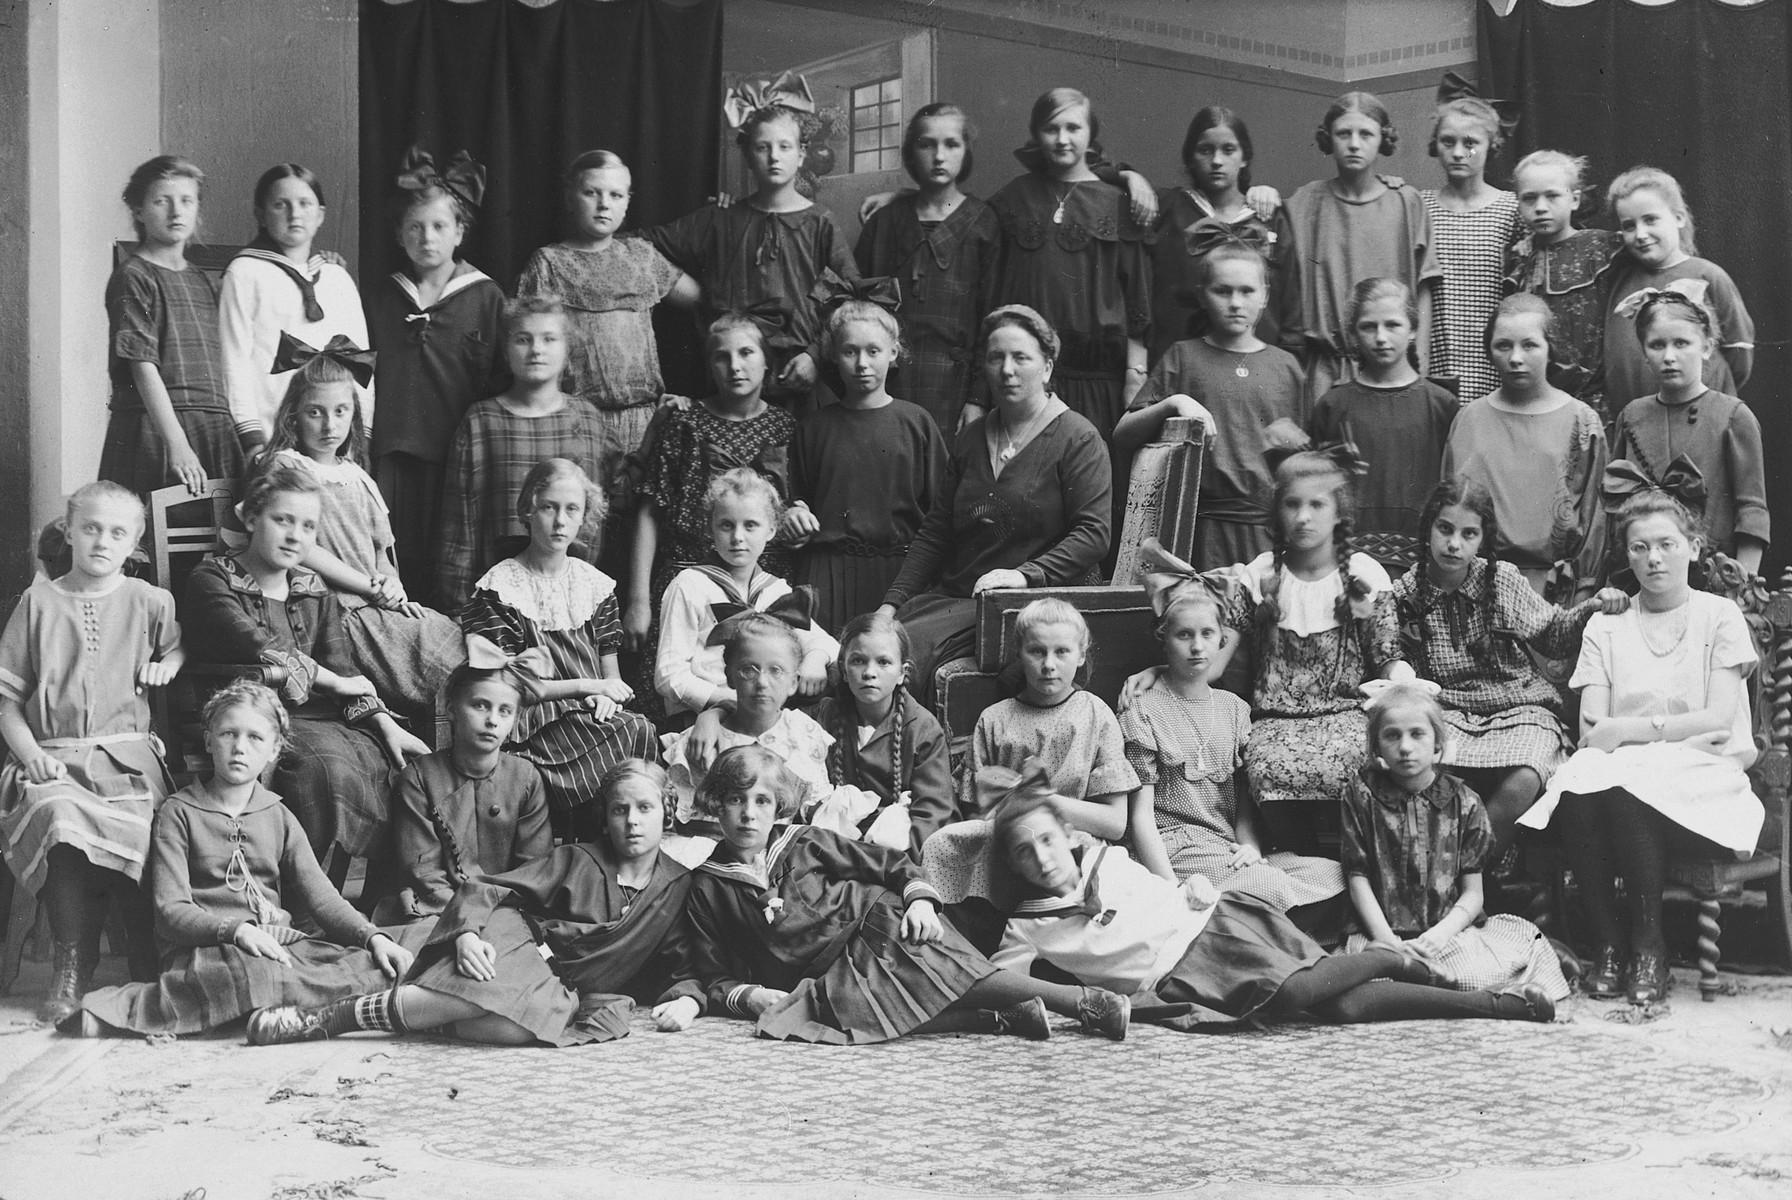 School class portrait of an elementary school in Braunsberg.   Hildegard Wolff is seated second row, second from the right.